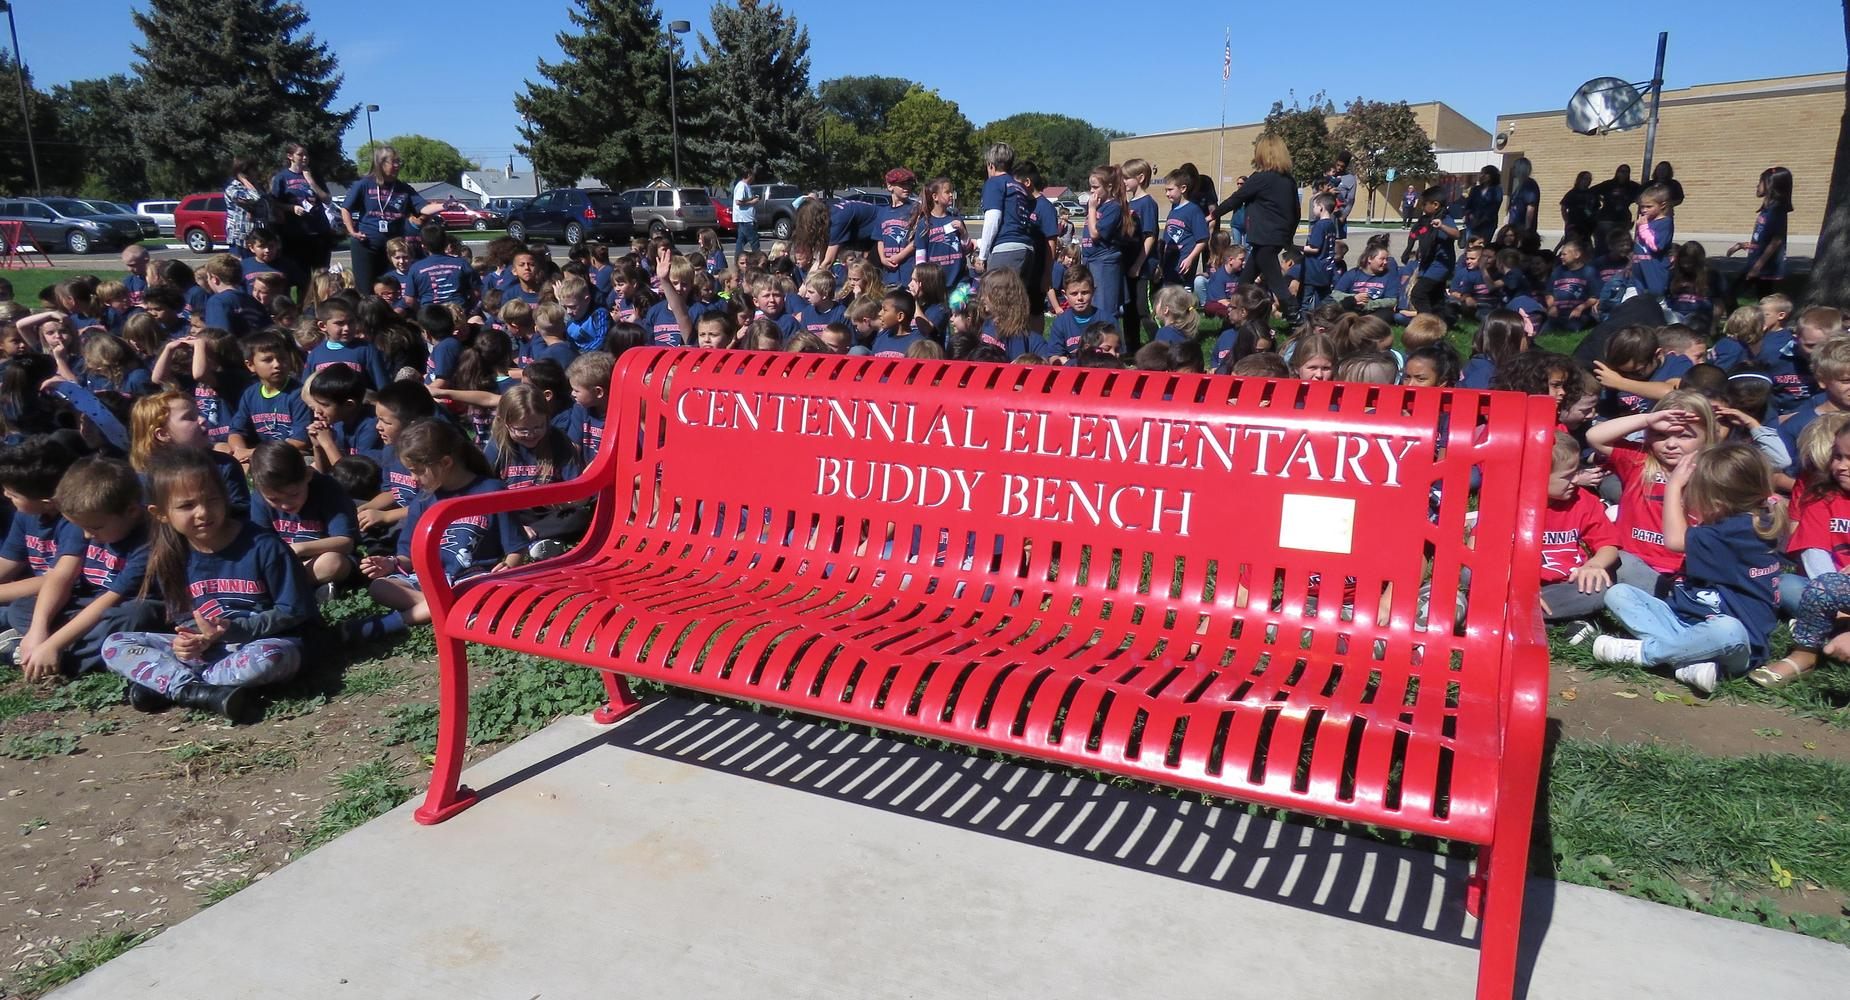 Centennial Elementary's New Buddy Bench